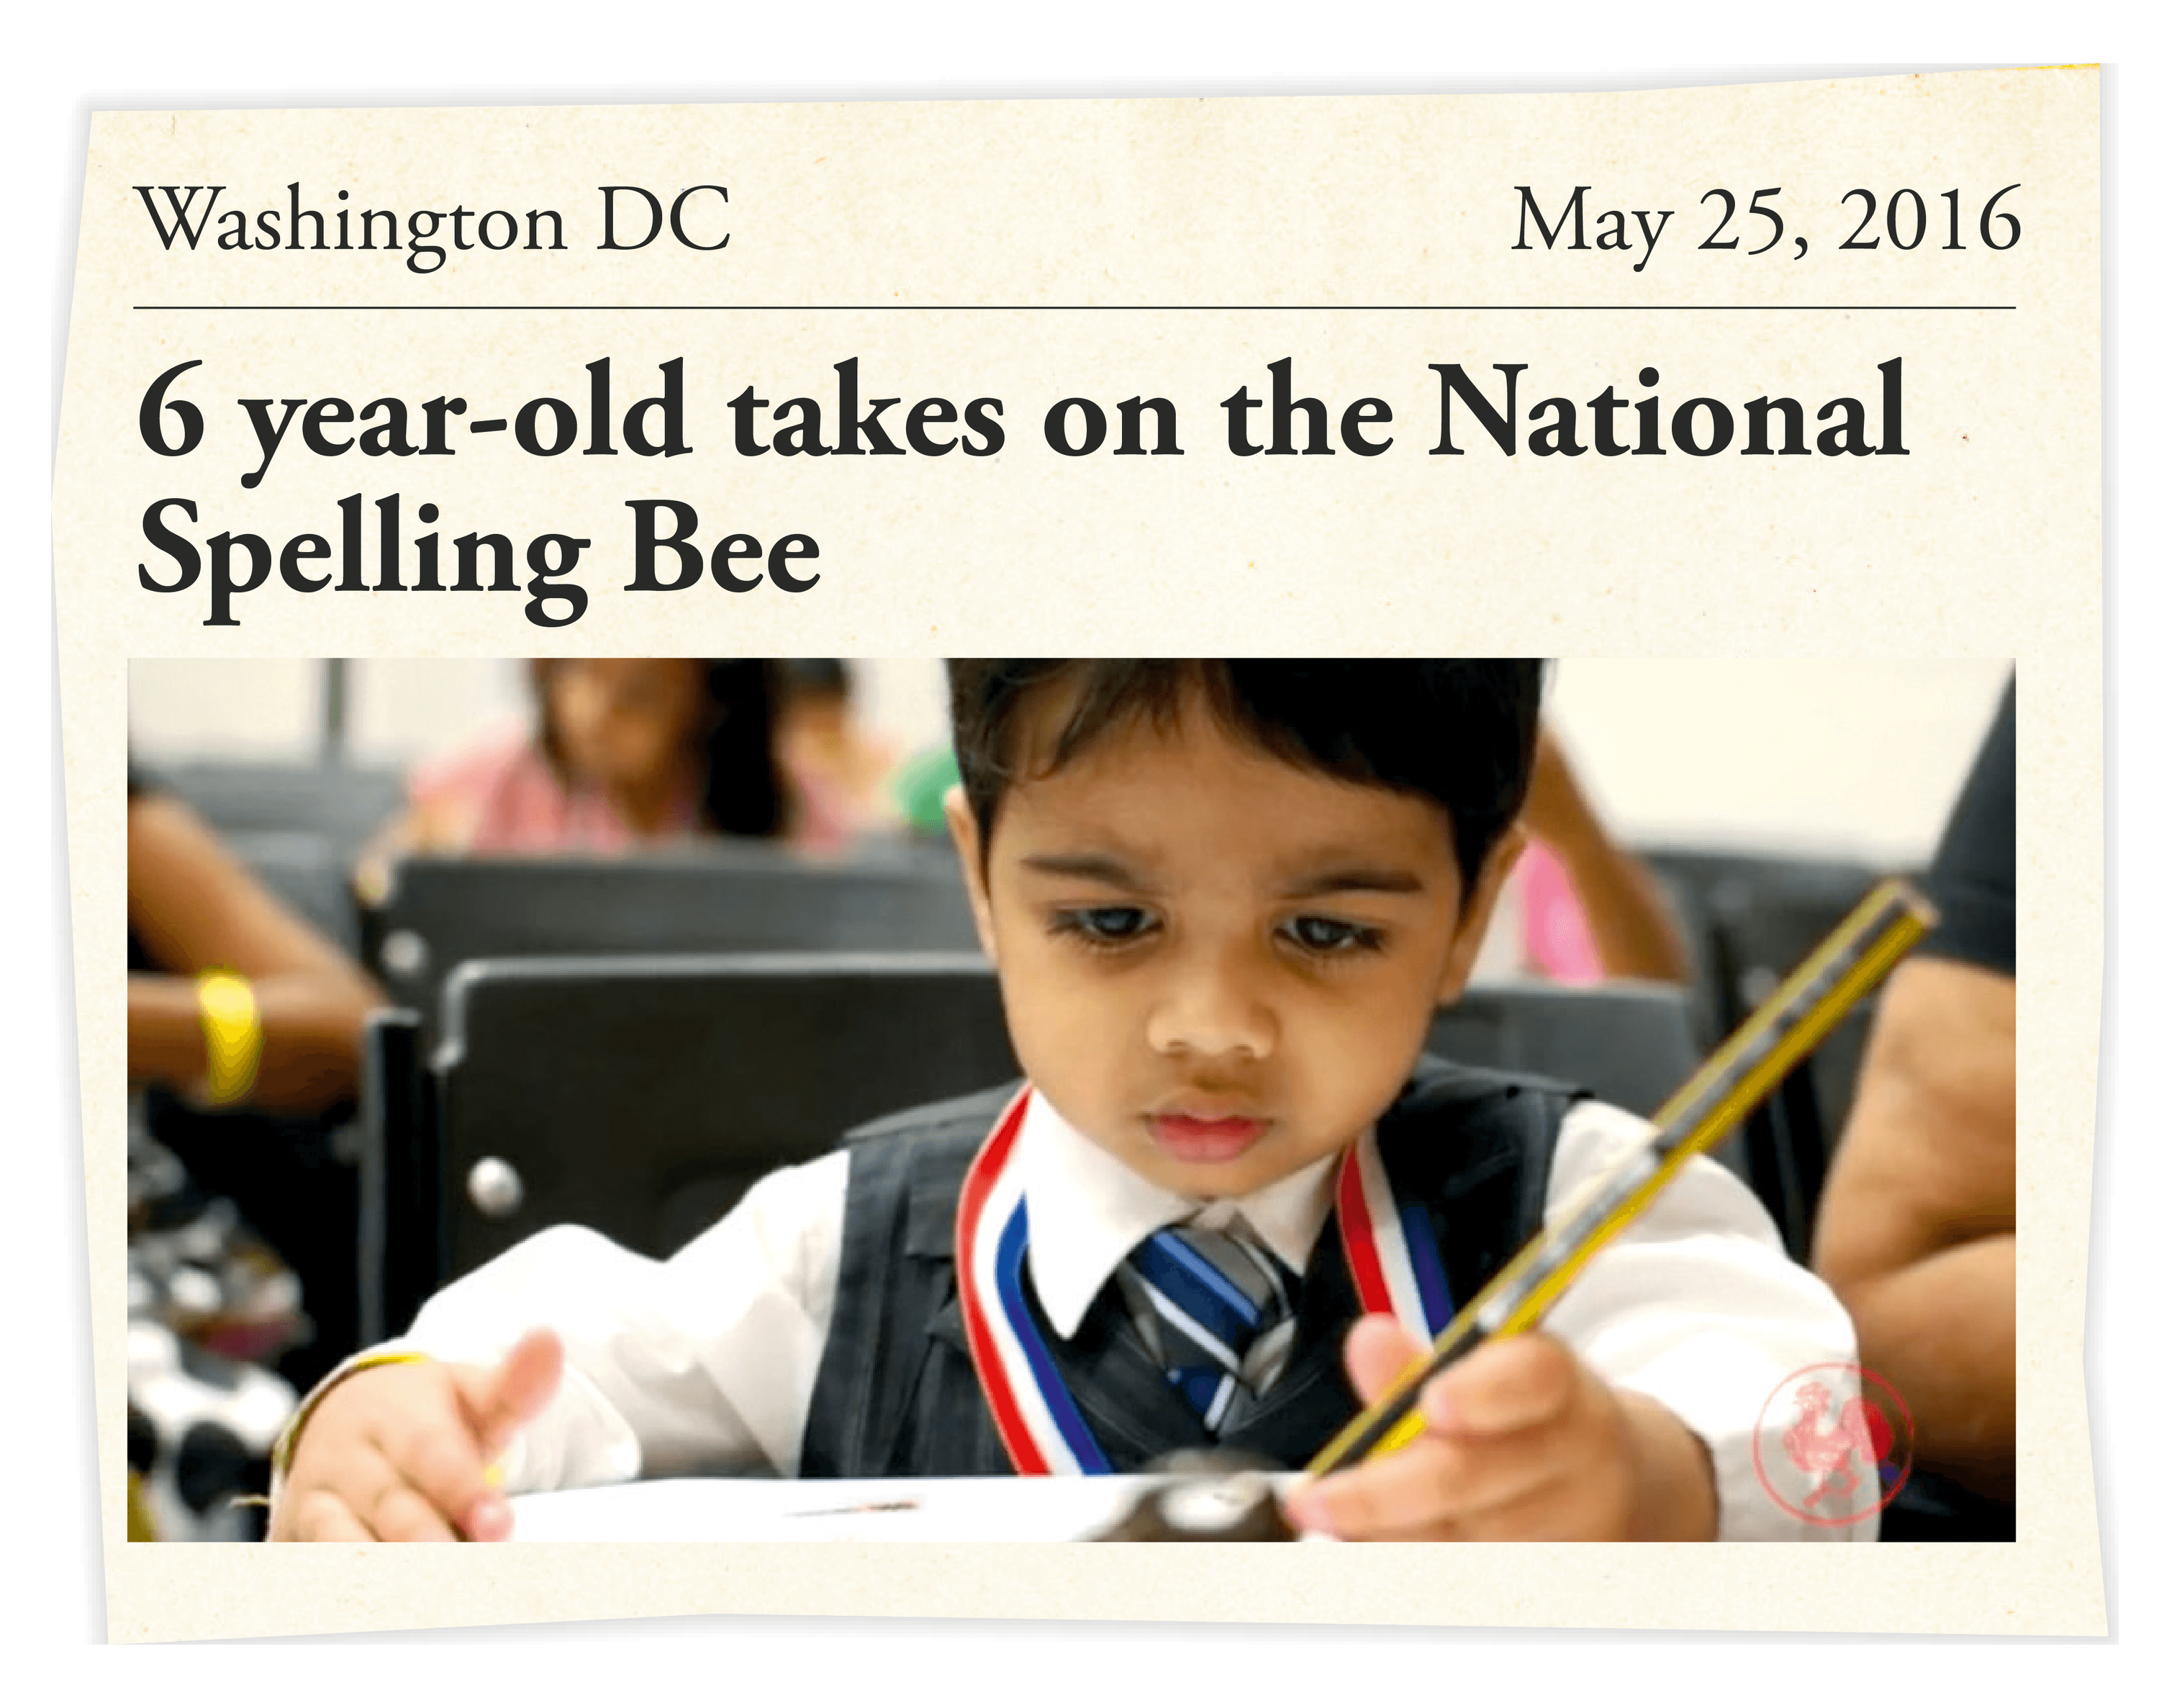 6 year-old takes on the National Spelling Bee